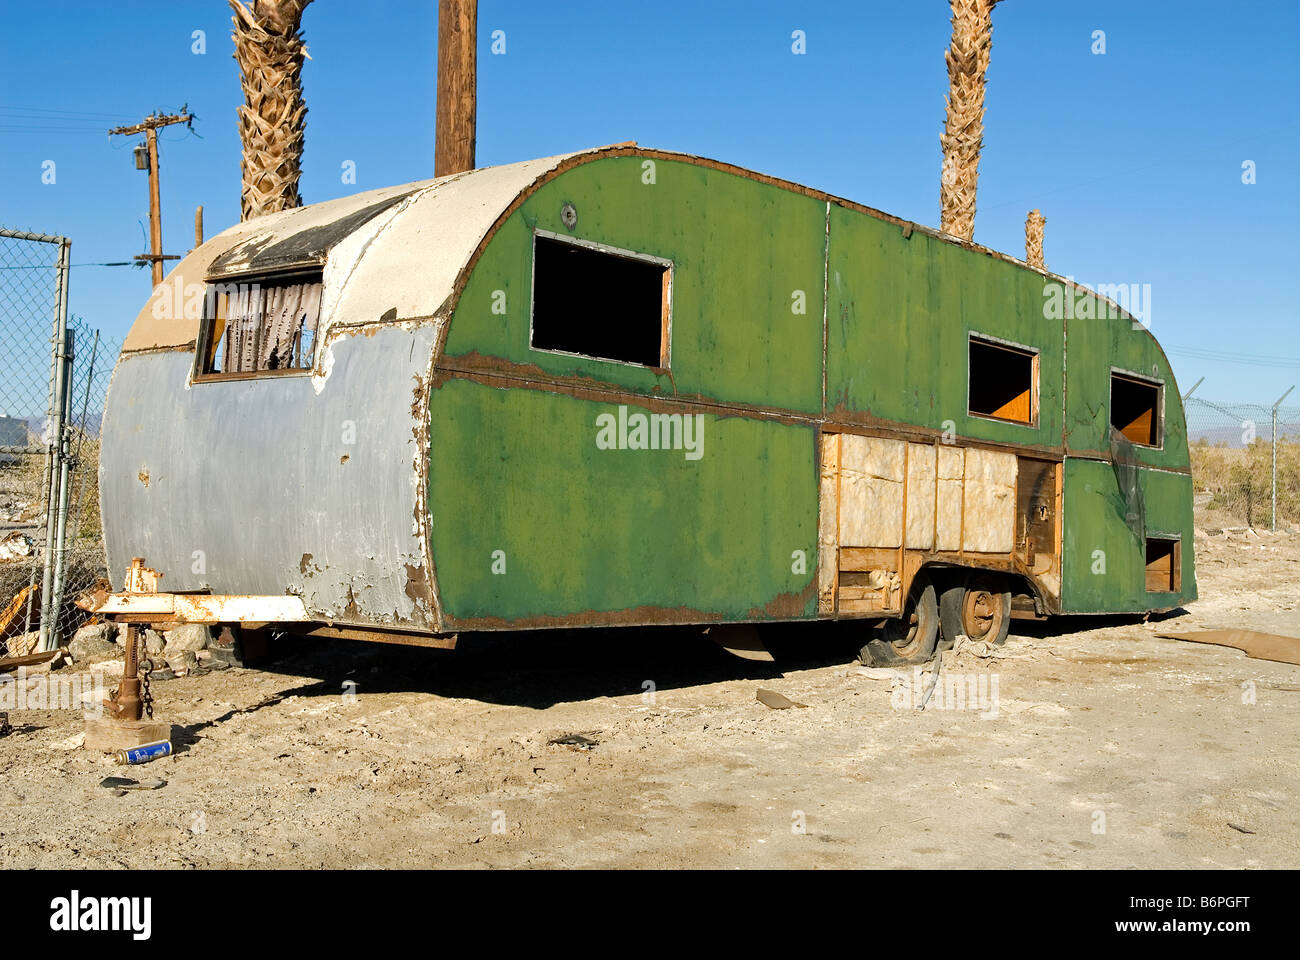 Abandoned Mobile Home Salton Sea Beach Southern California USA